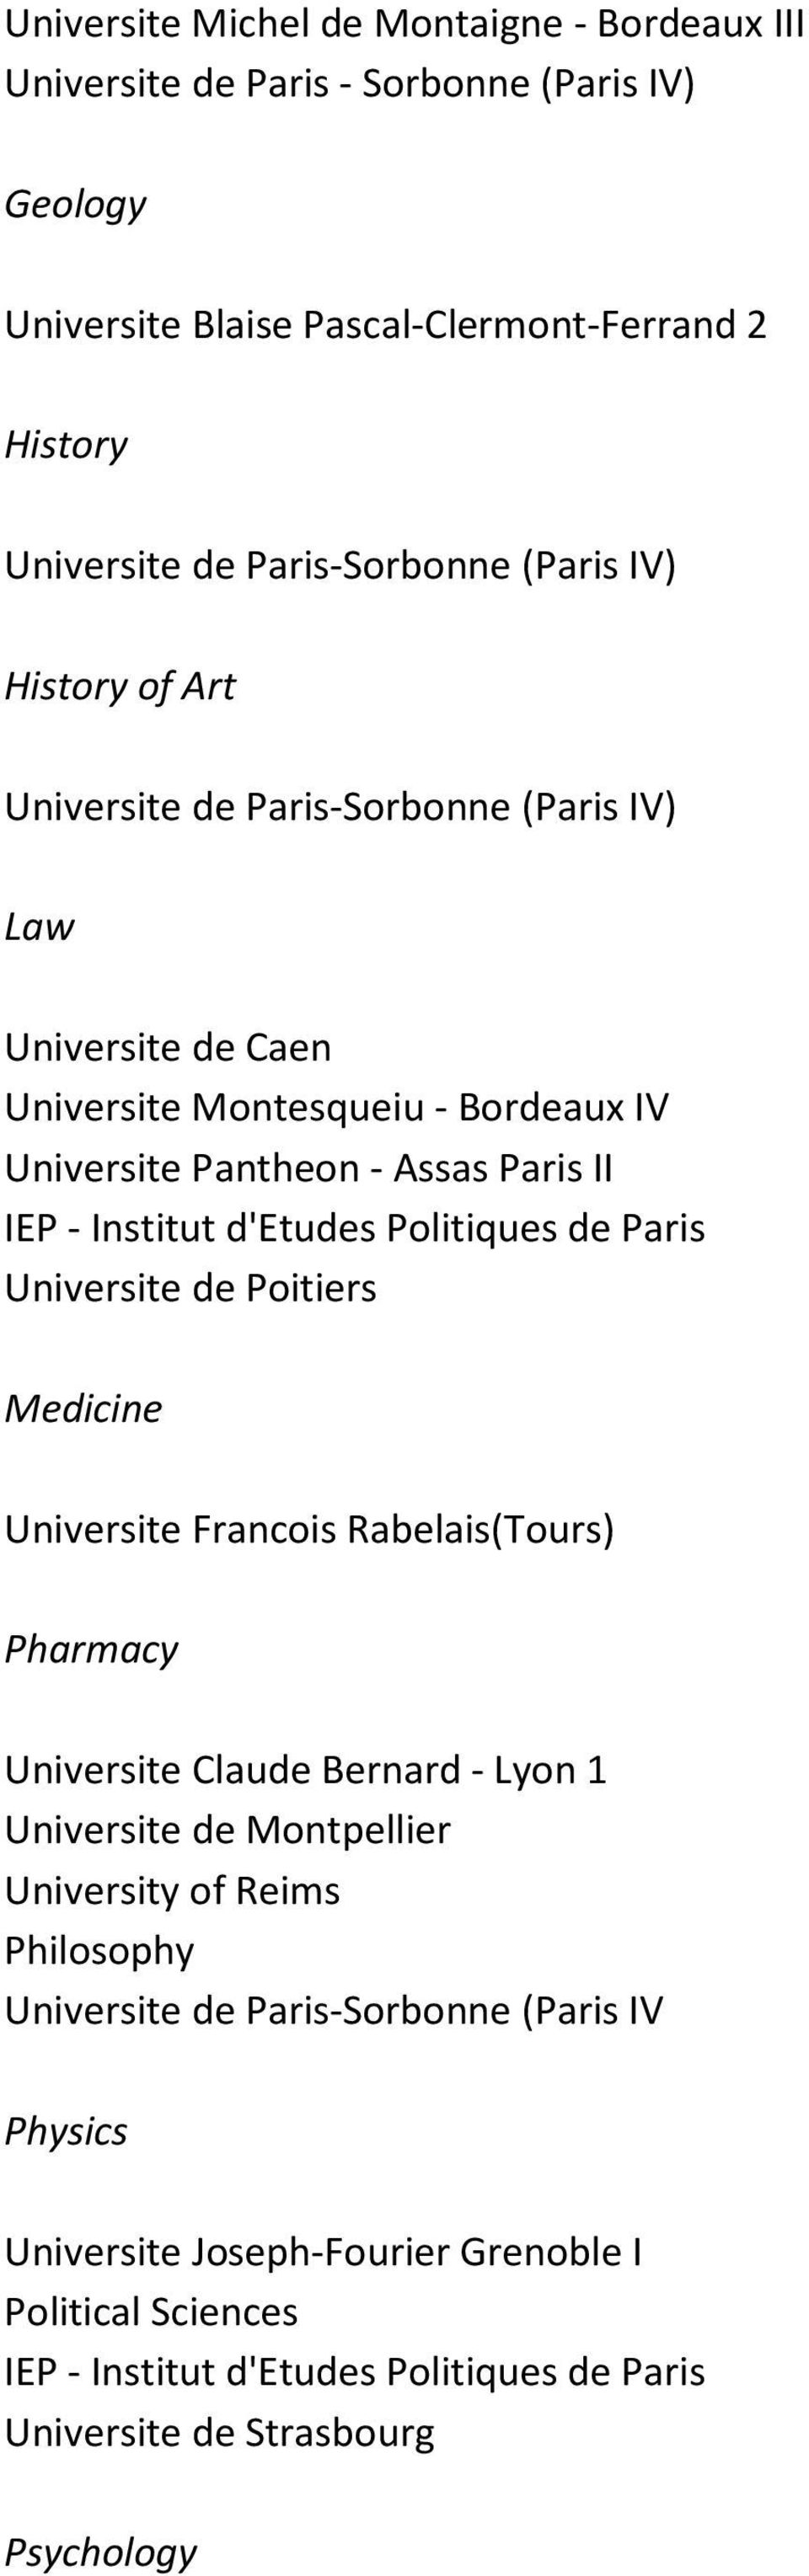 Politiques de Paris Universite de Poitiers Medicine Universite Francois Rabelais(Tours) Pharmacy Universite Claude Bernard - Lyon 1 Universite de Montpellier University of Reims